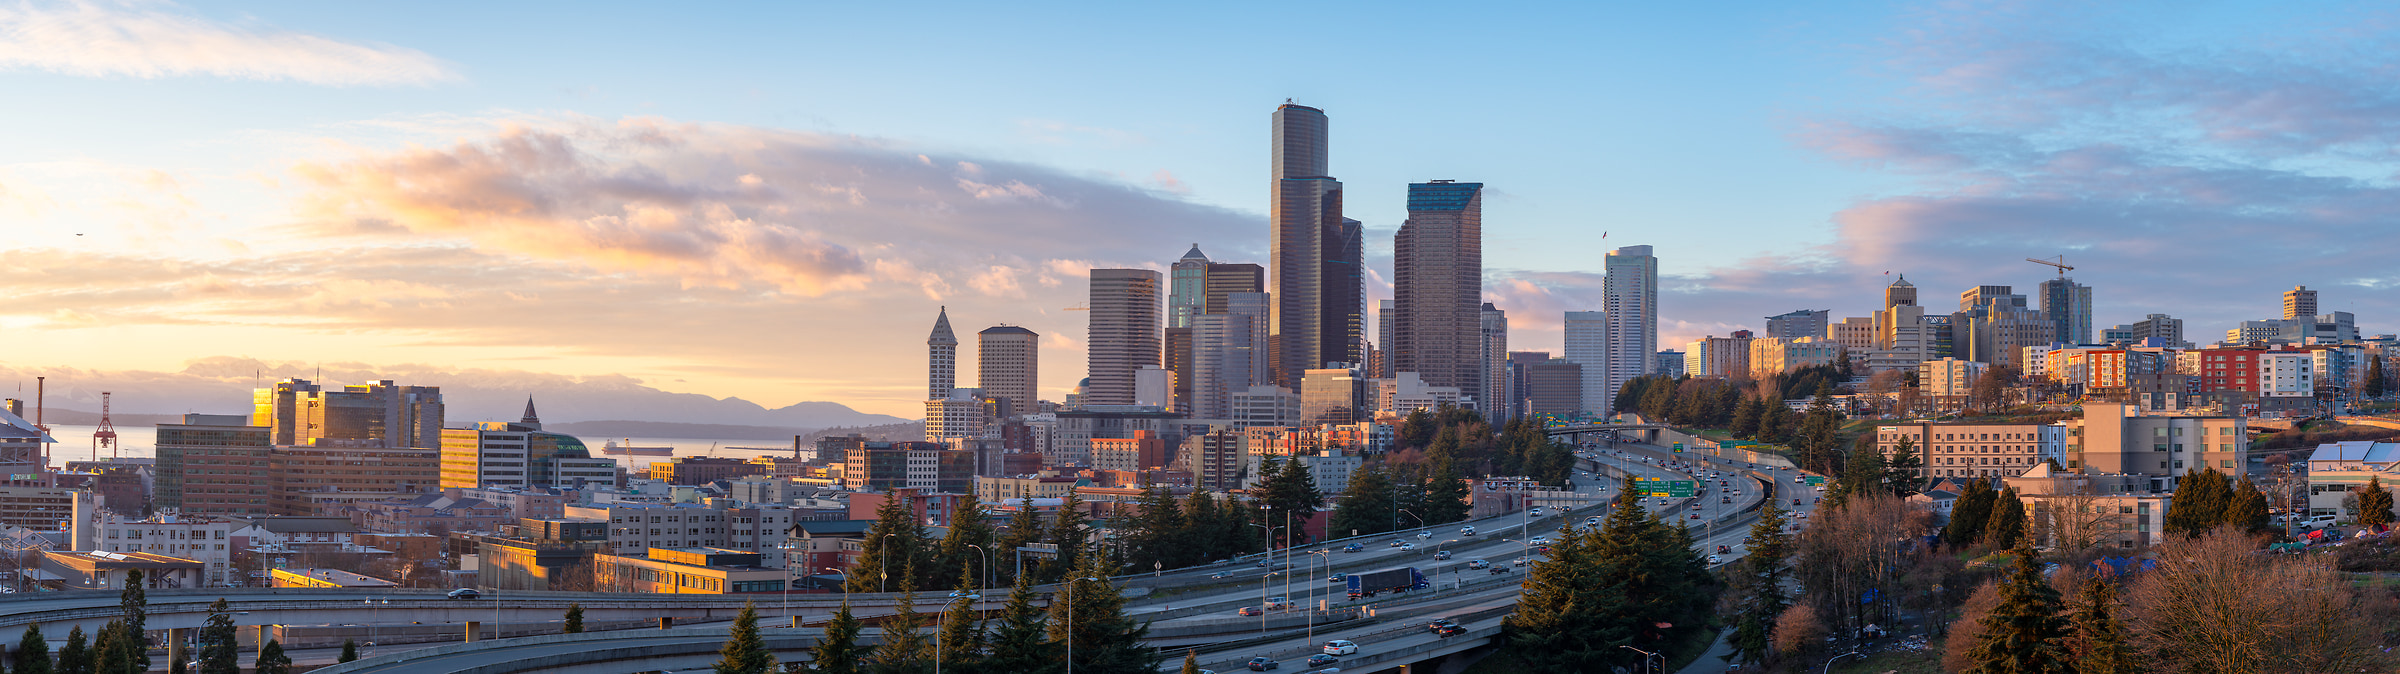 206 megapixels! A very high resolution, large-format VAST photo print of the Seattle, Washington skyline at sunset with highways in the foreground; cityscape photograph created by Greg Probst in Seattle, Washington